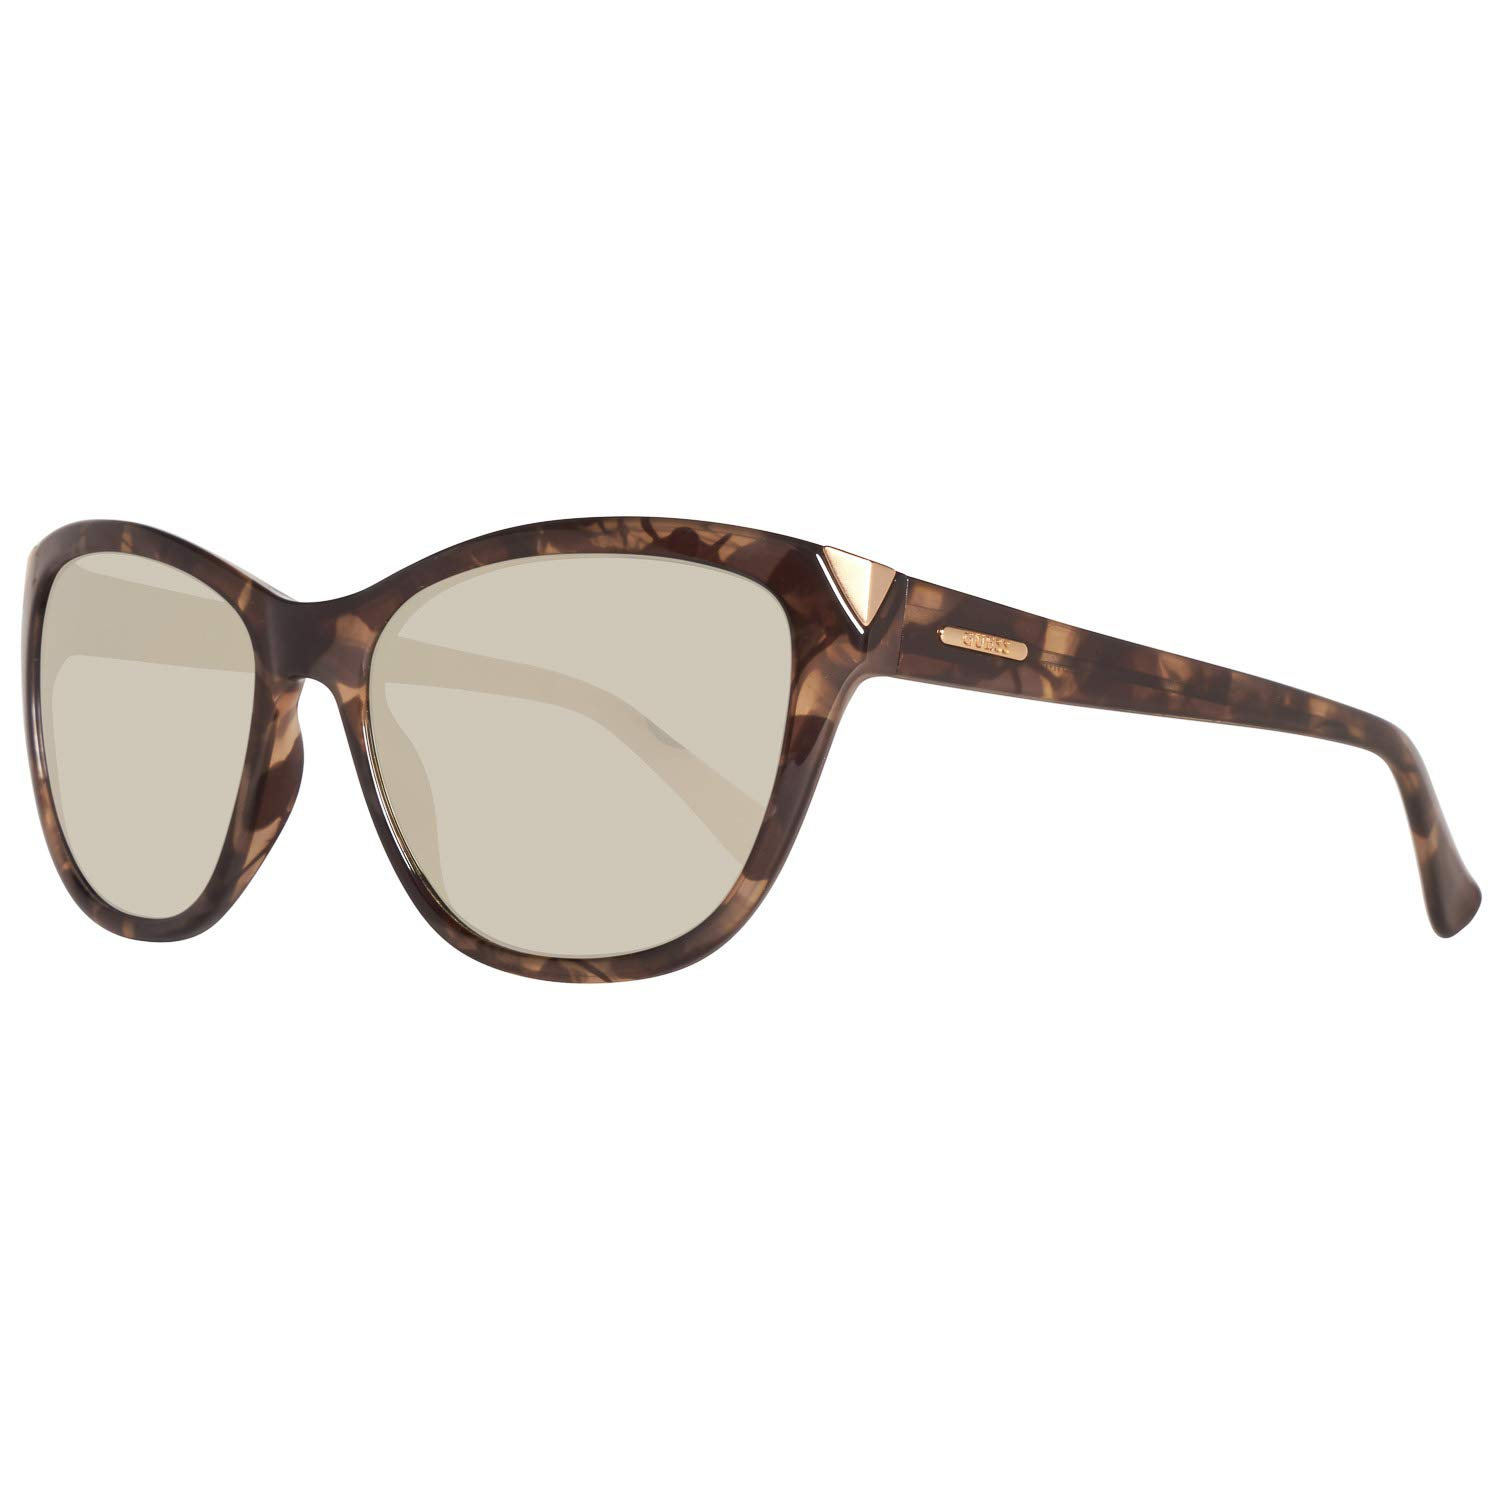 Amazon.com: Guess Natasha Mirrored Cat Eye Sunglasses de la ...